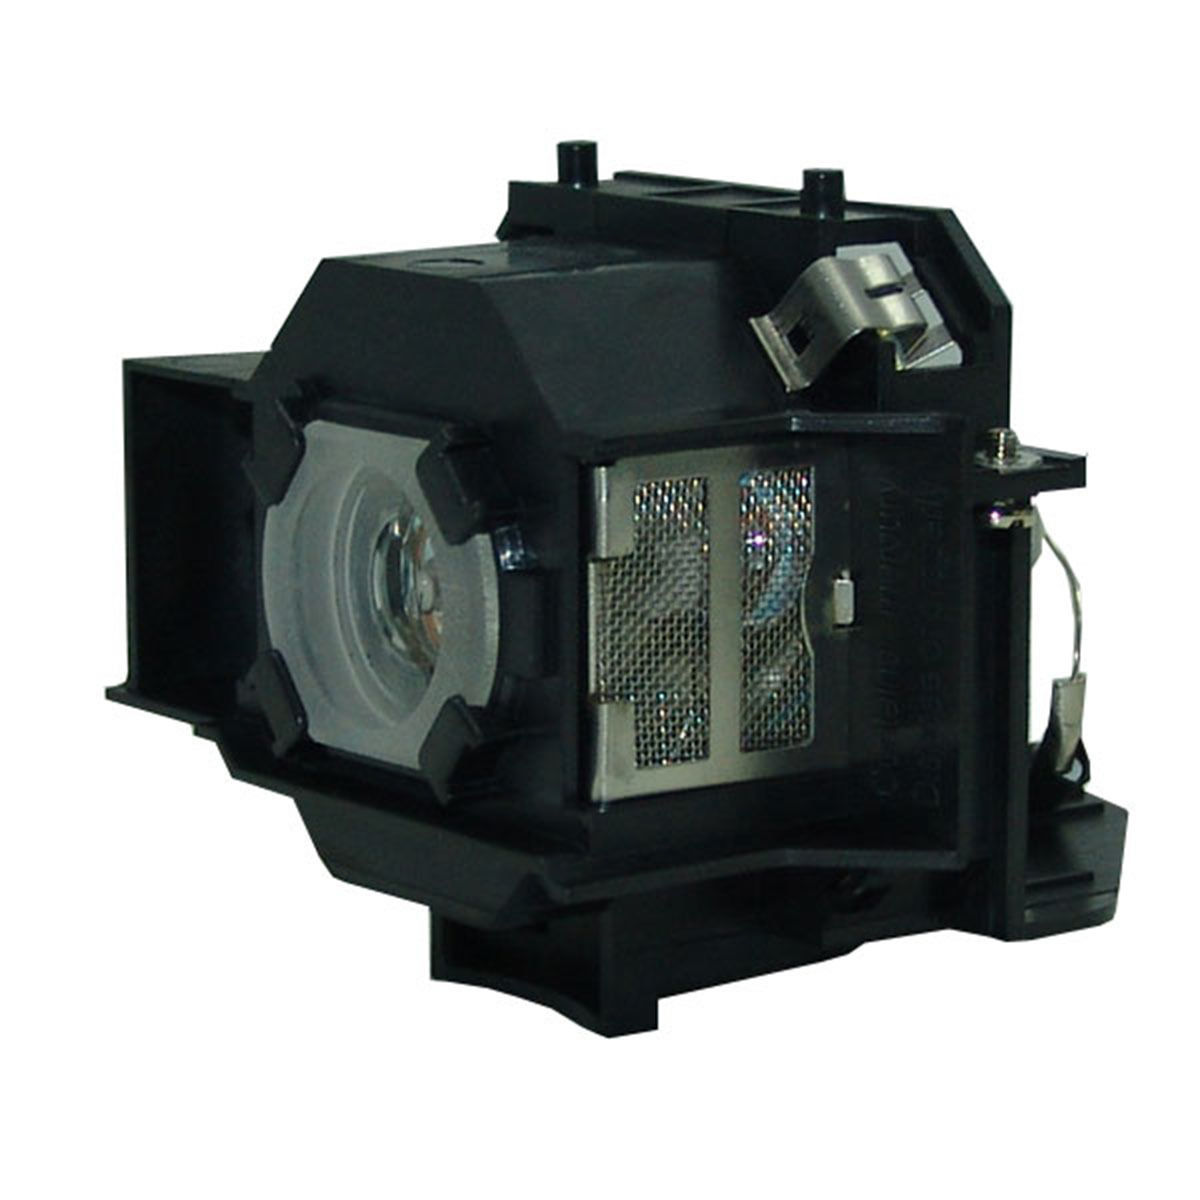 Projector Lamp Bulb ELPLP33 V13H010L33 for Epson EMP-TWD1 EMP-TWD3 EMP-RWD1 MovieMate 30S  with housing projector replacement lamp elplp44 v13h010l44 for eh dm2 emp dm1 moviemate 50 moviemate 55 with housing happybate